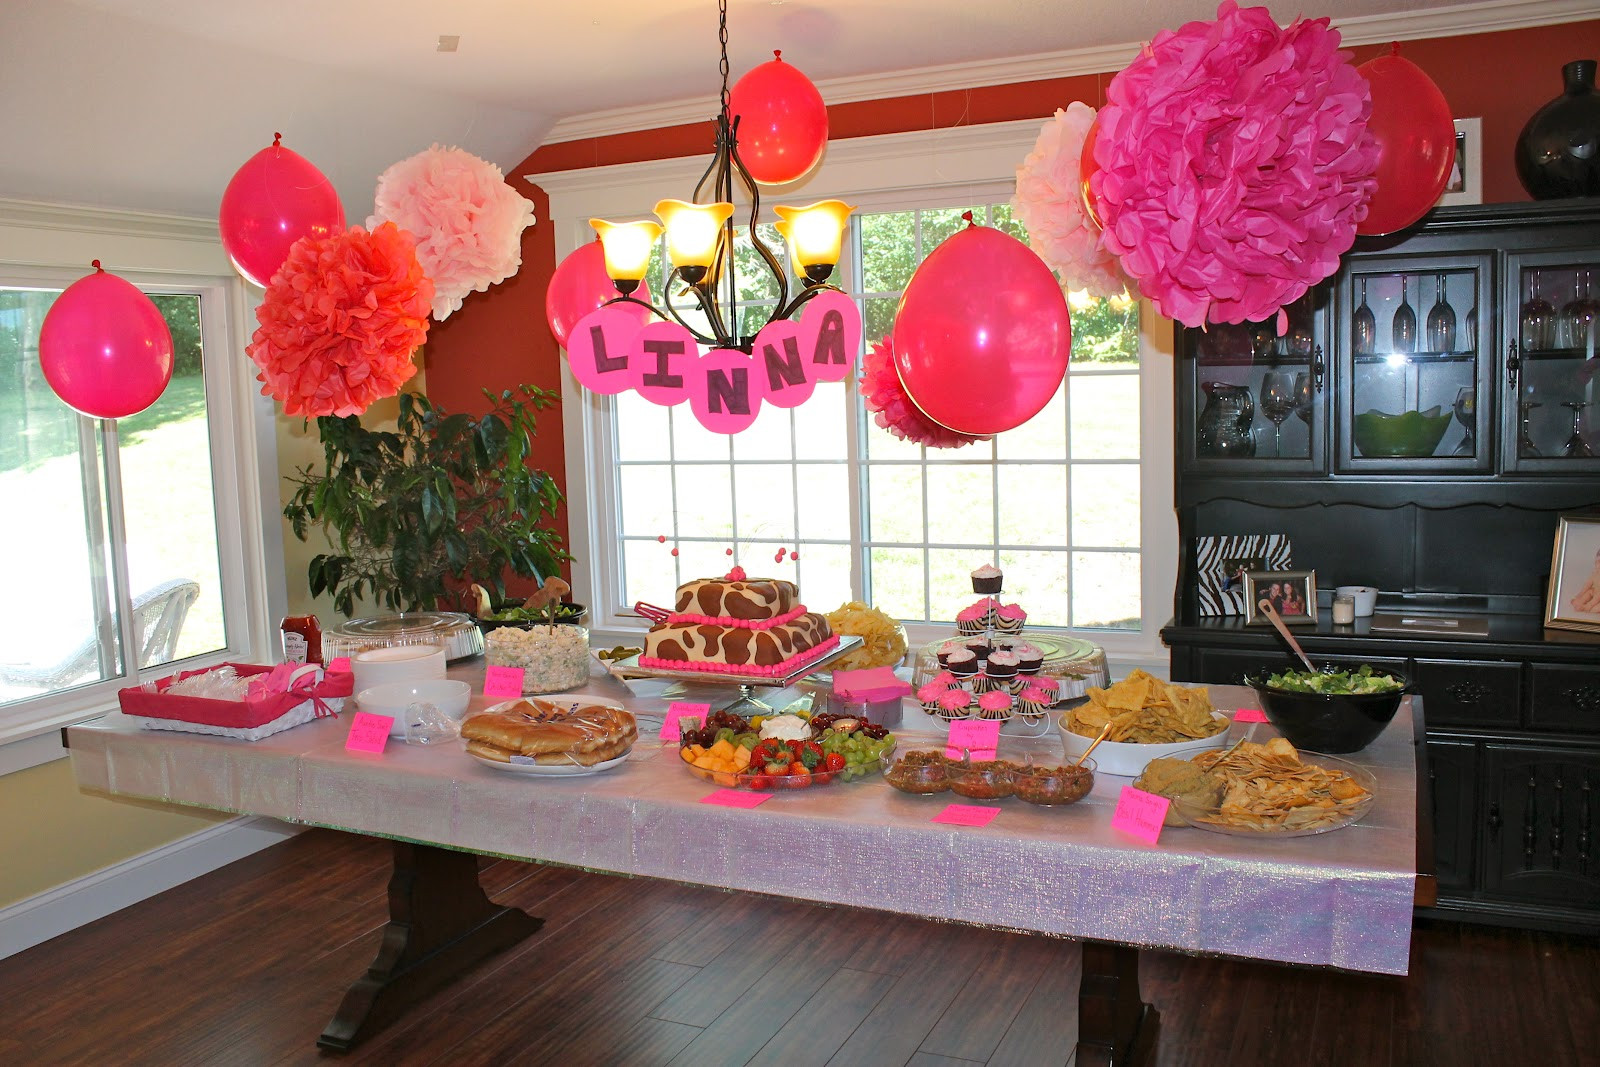 Best ideas about 1st Birthday Party . Save or Pin MINNESOTA BABY Linna s 1st birthday party Now.